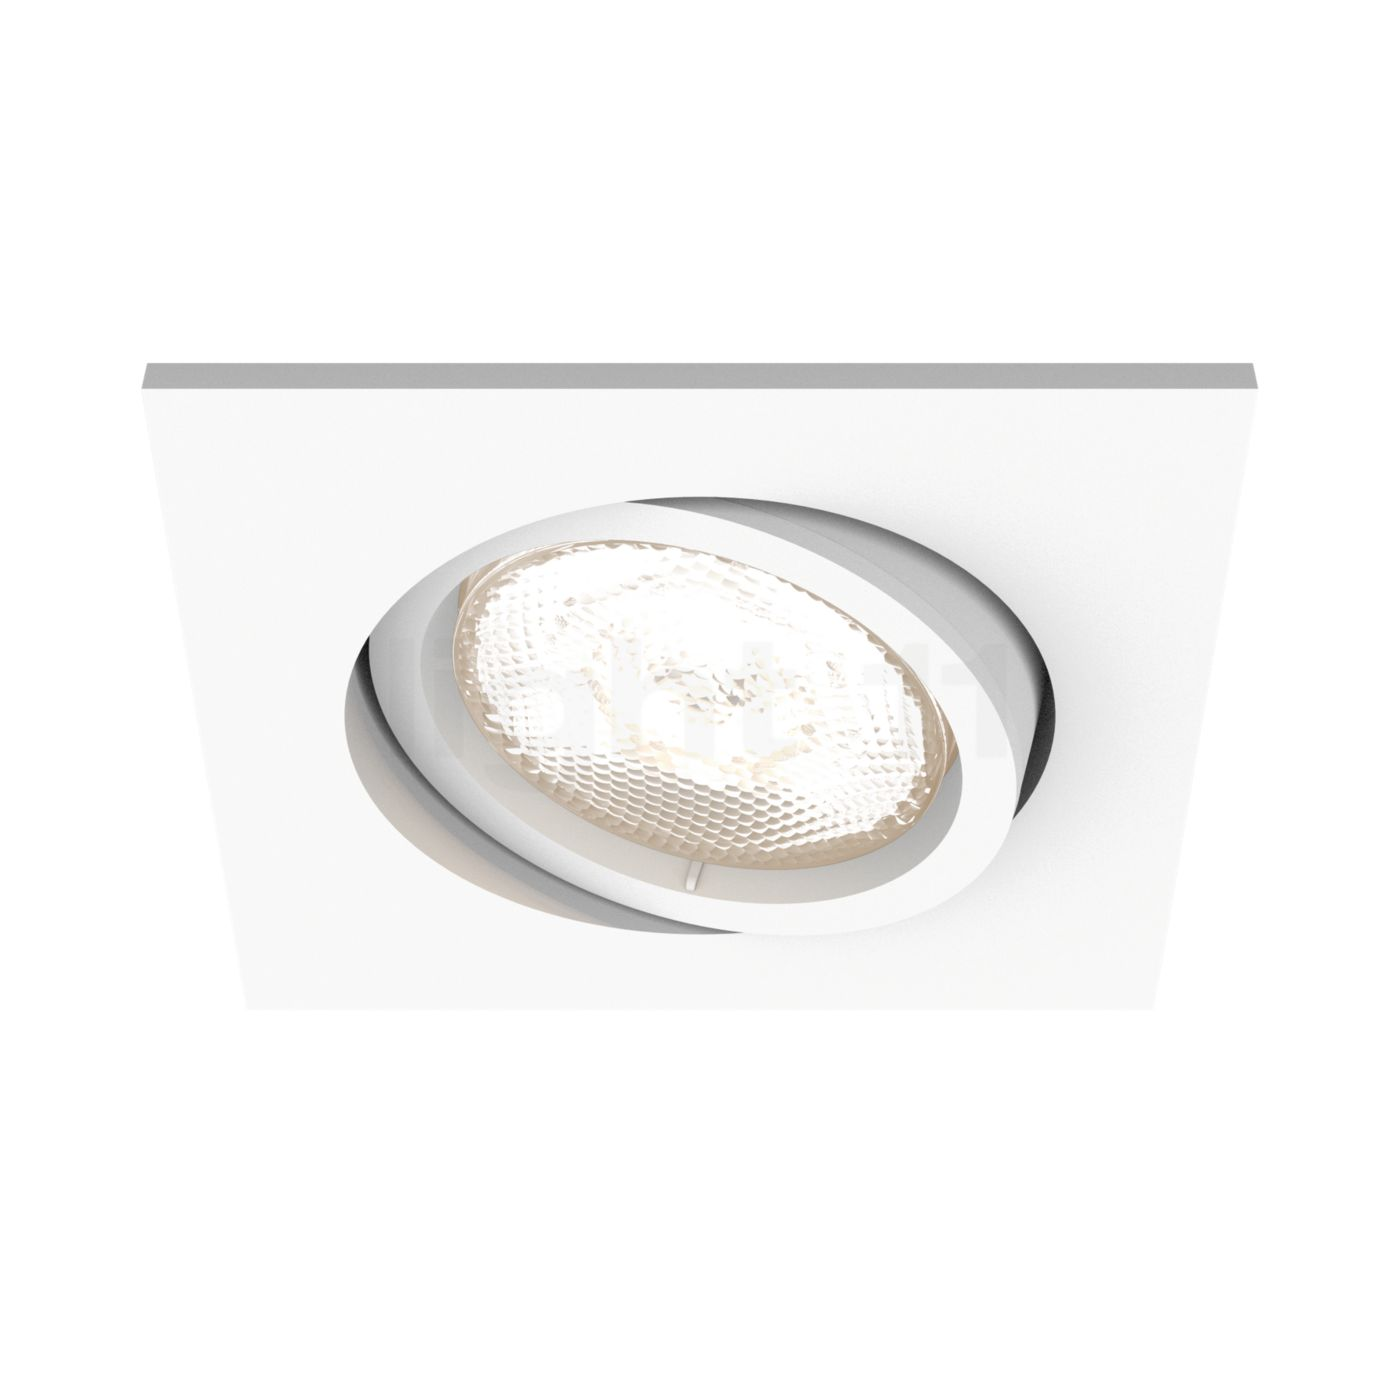 Led Spots Feuchtraum Led Spots Eckig Excellent Koled With Led Spots Eckig Cheap Stck